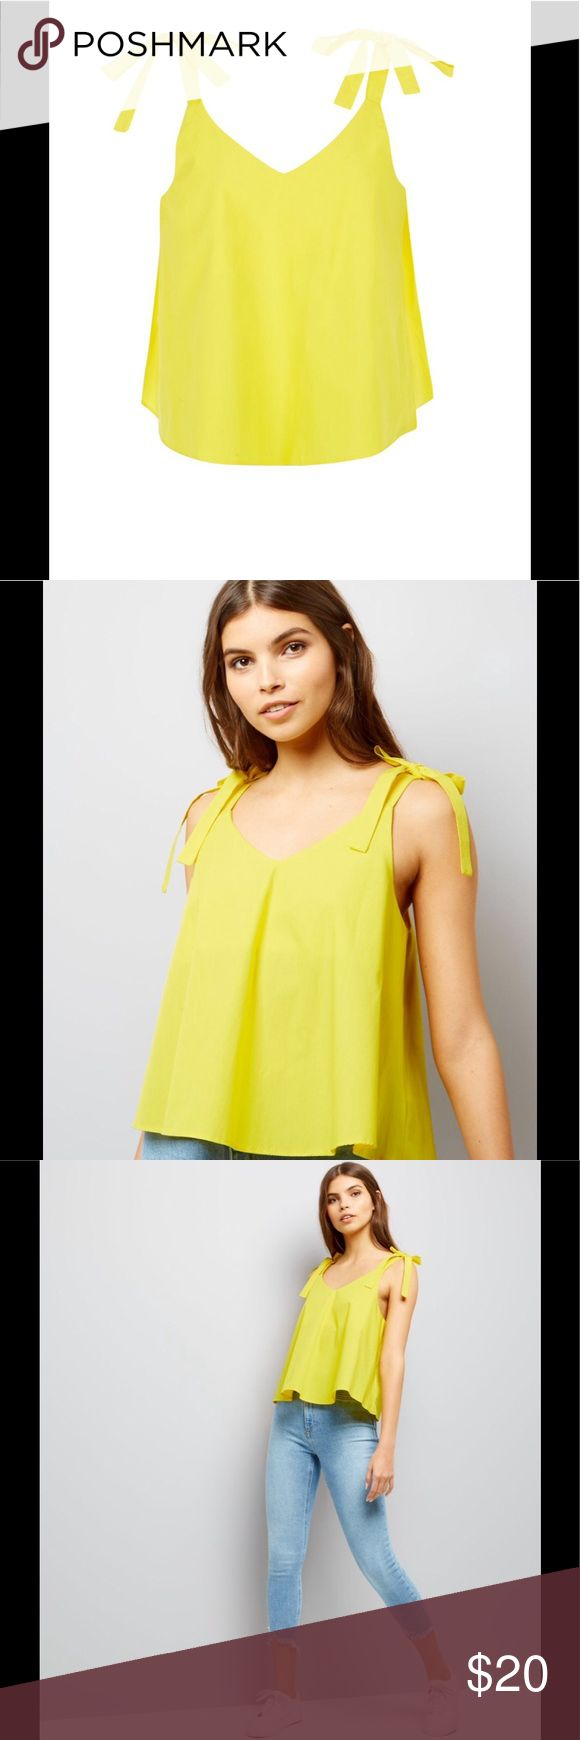 Yellow Cami Top Strap tie cami top. Very light and great for the summer. New Look Tops Camisoles